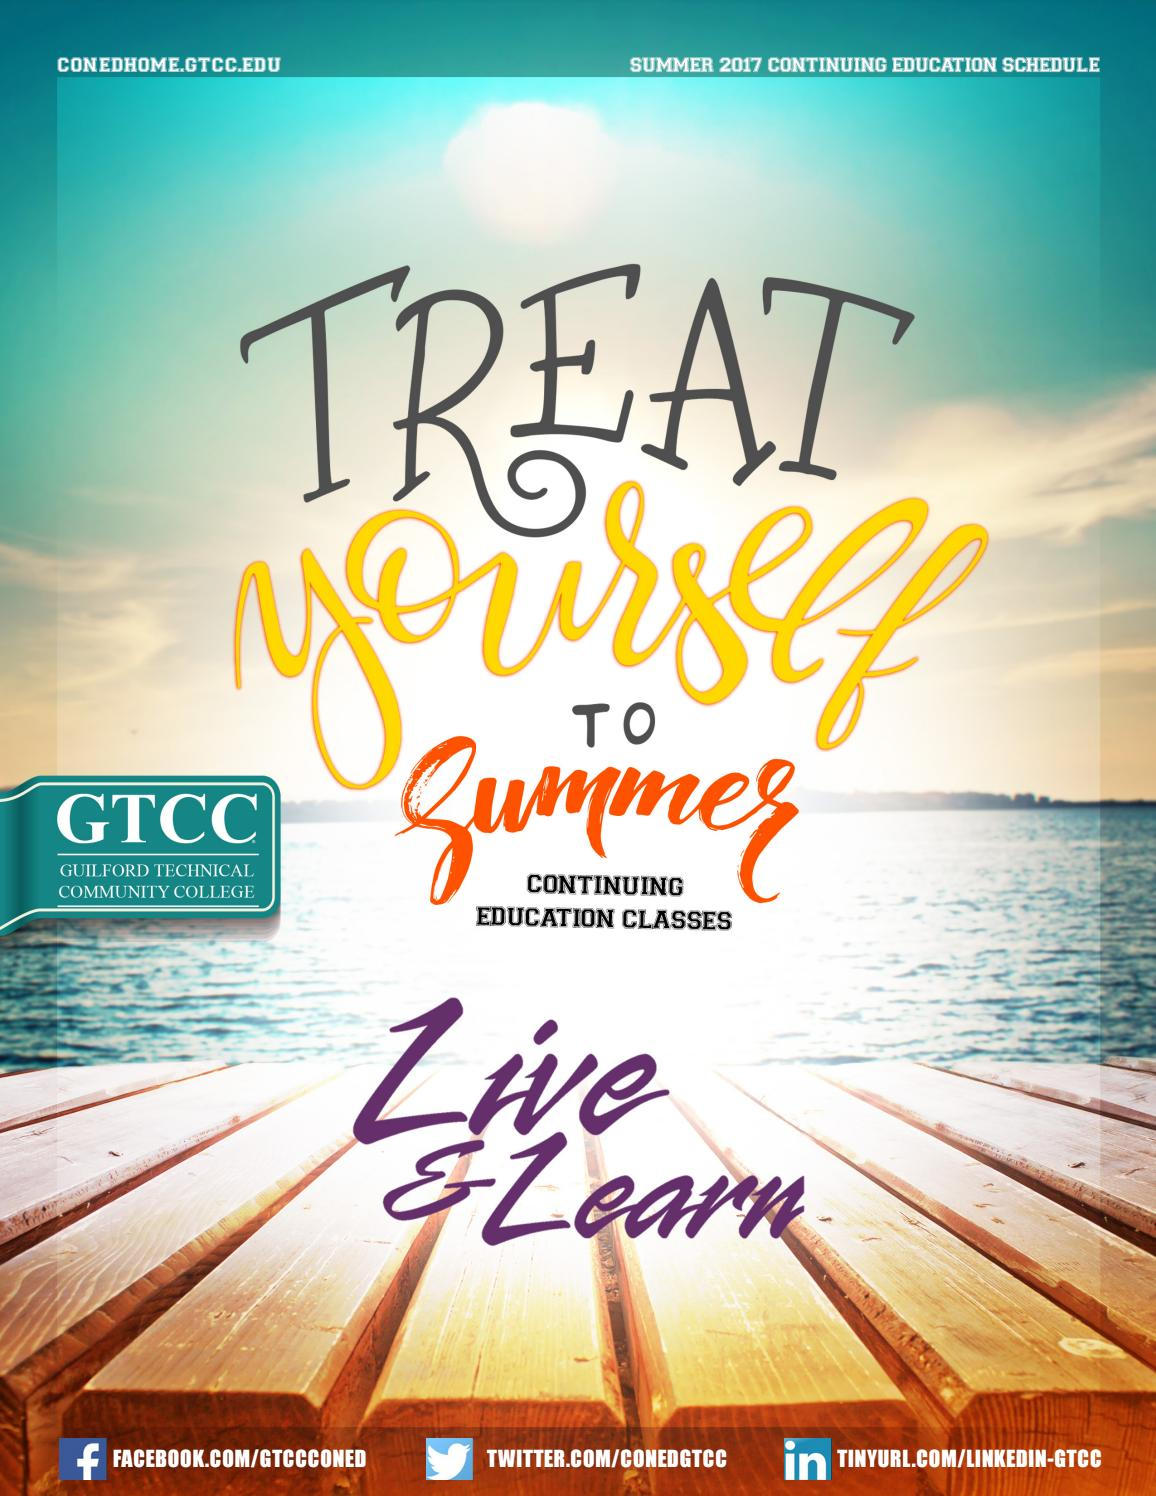 Gtccs summer 2017 live learn schedule by guilford technical gtccs summer 2017 live learn schedule by guilford technical community college issuu 1betcityfo Choice Image